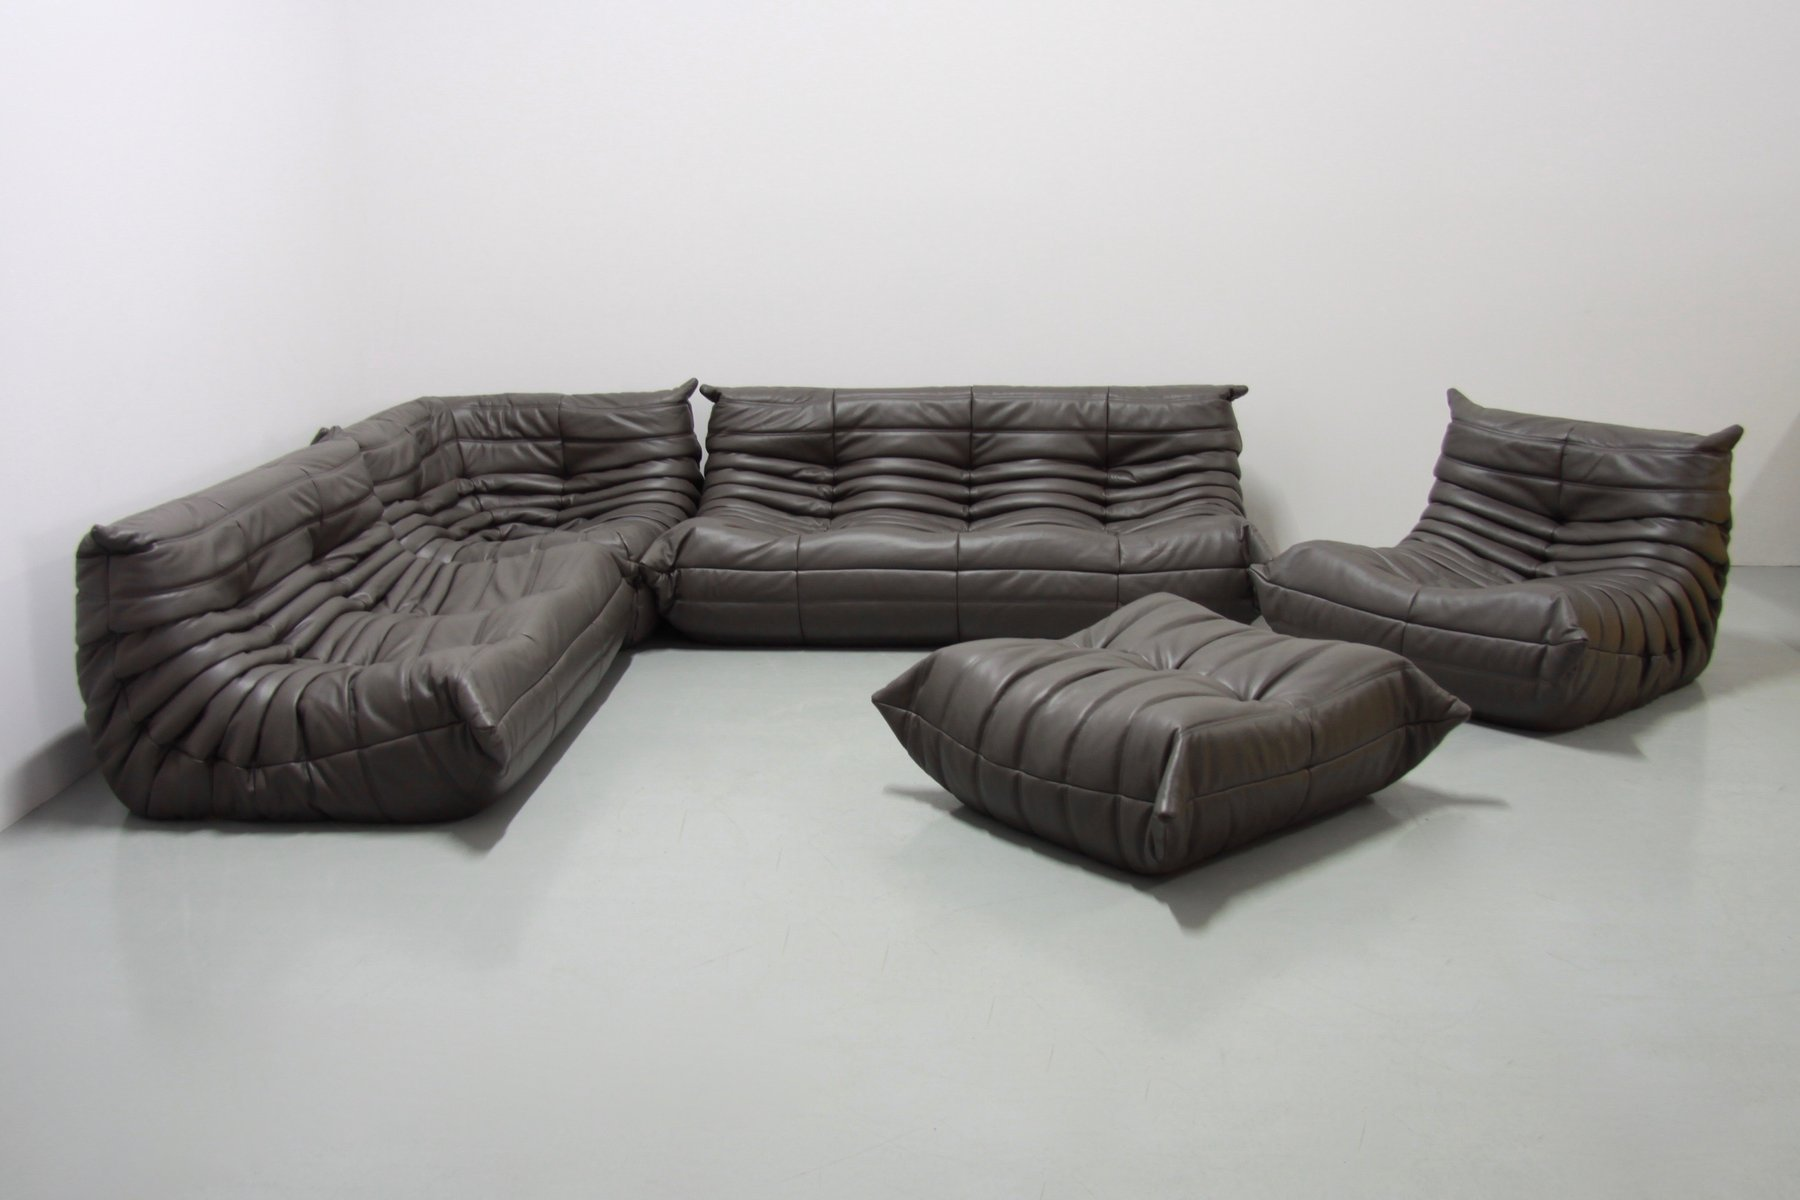 vintage graphit togo ledersofa set von michel ducaroy f r ligne roset 1970er bei pamono kaufen. Black Bedroom Furniture Sets. Home Design Ideas